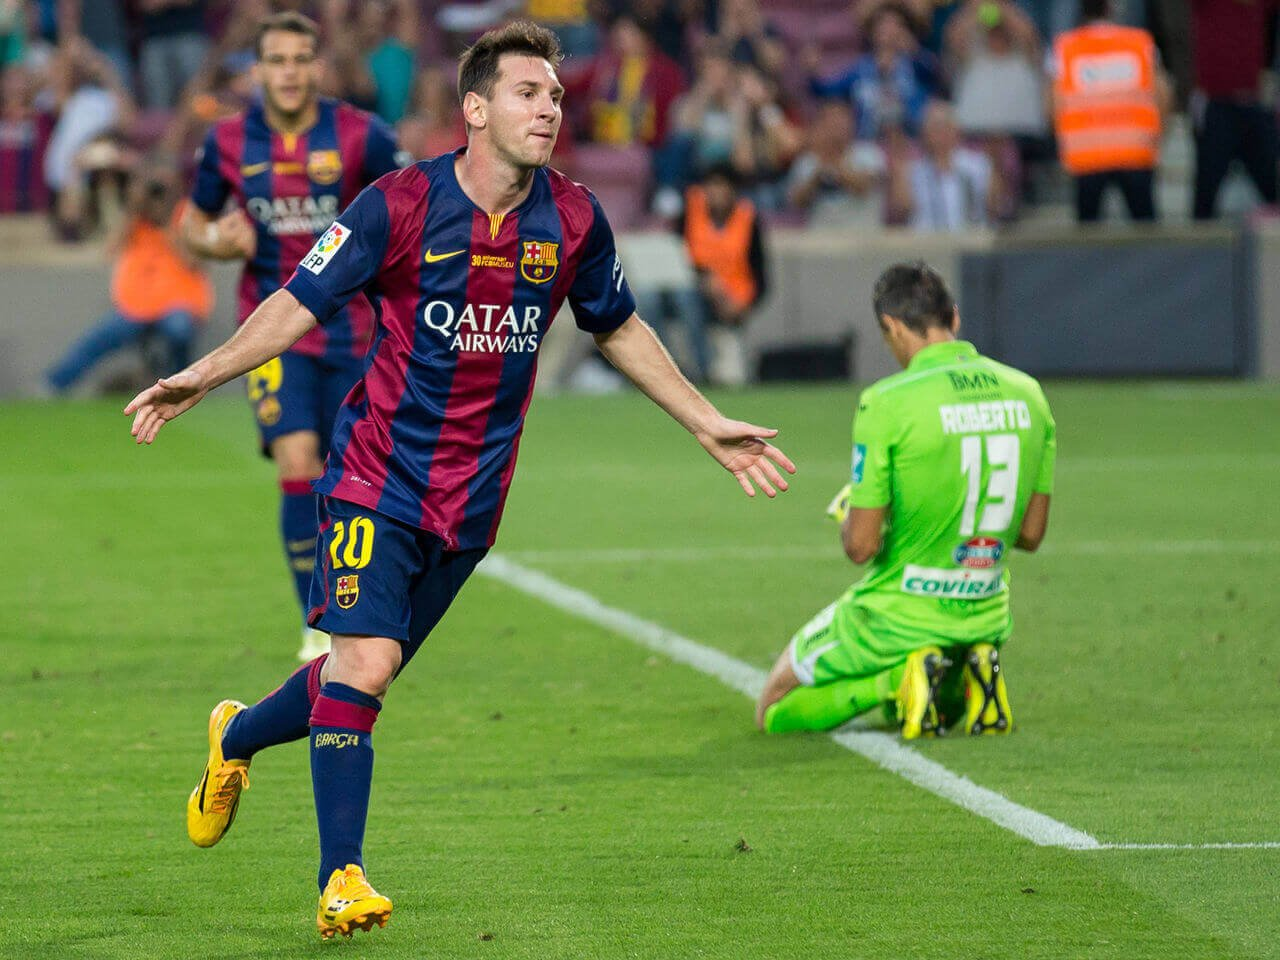 Apuestas barcelona manchester city betting sports betting live chat